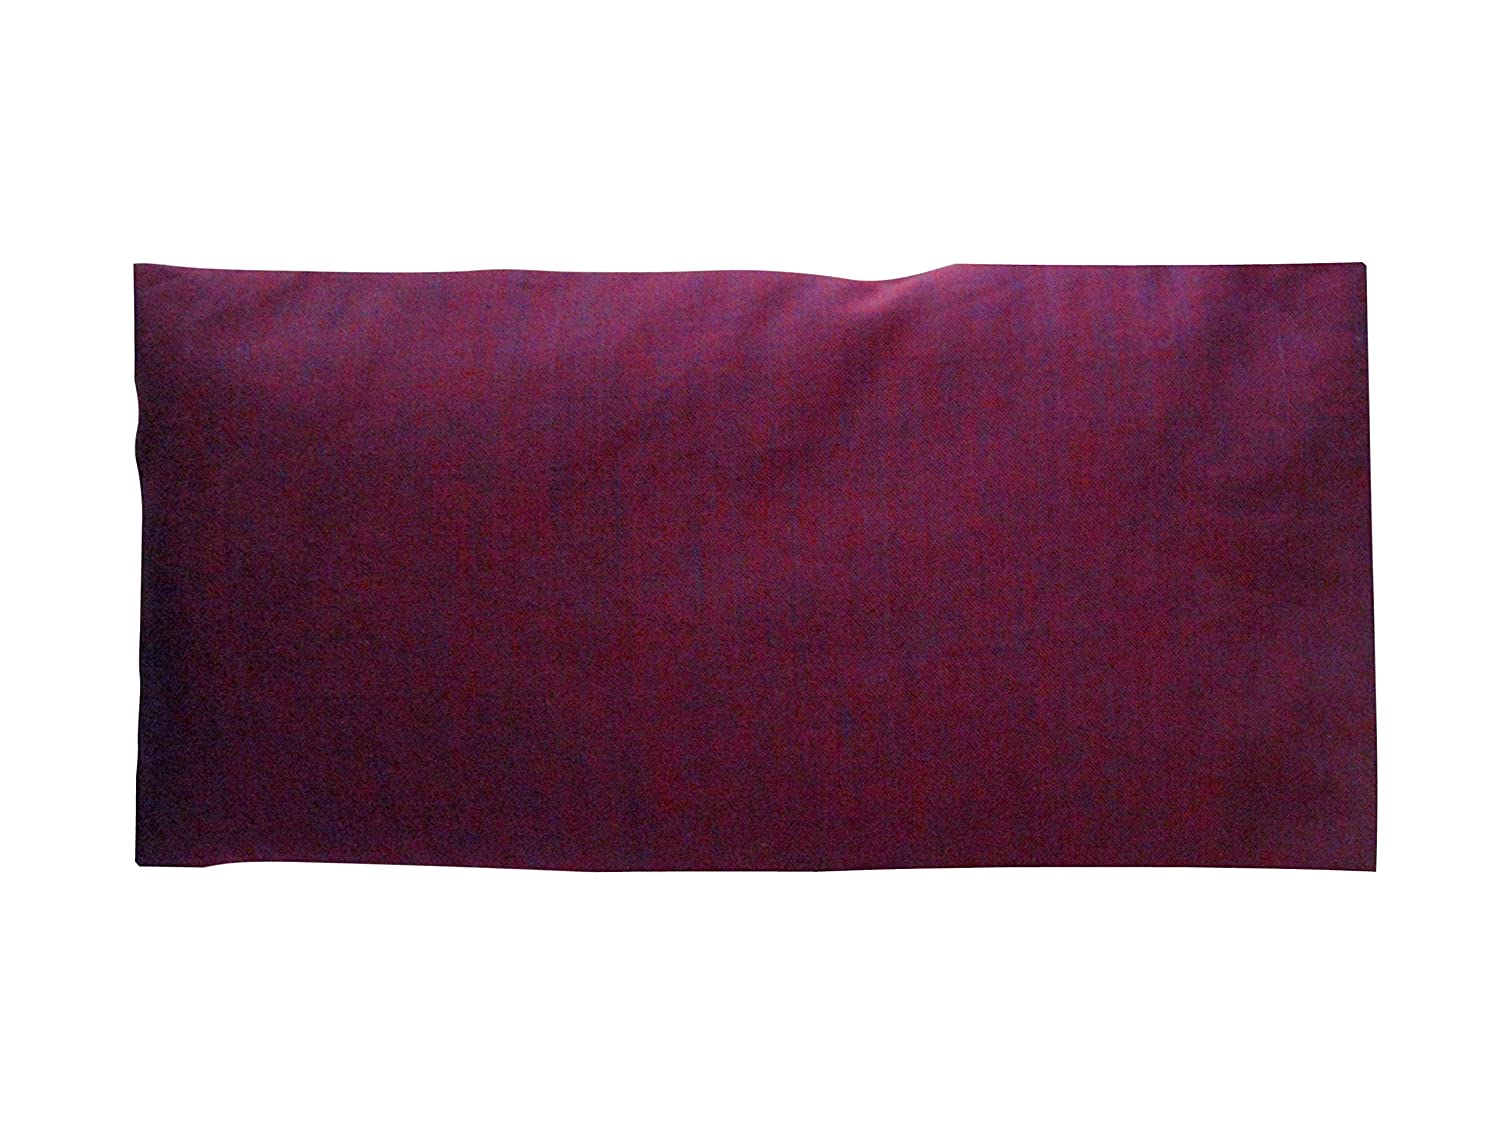 Peacegoods Cotton Eye Pillow COVER 4.5 x 9 Washable - fits our eye pillows or yours - yoga aromatherapy mediation massage - purple pink berry maroon Hunki Dori